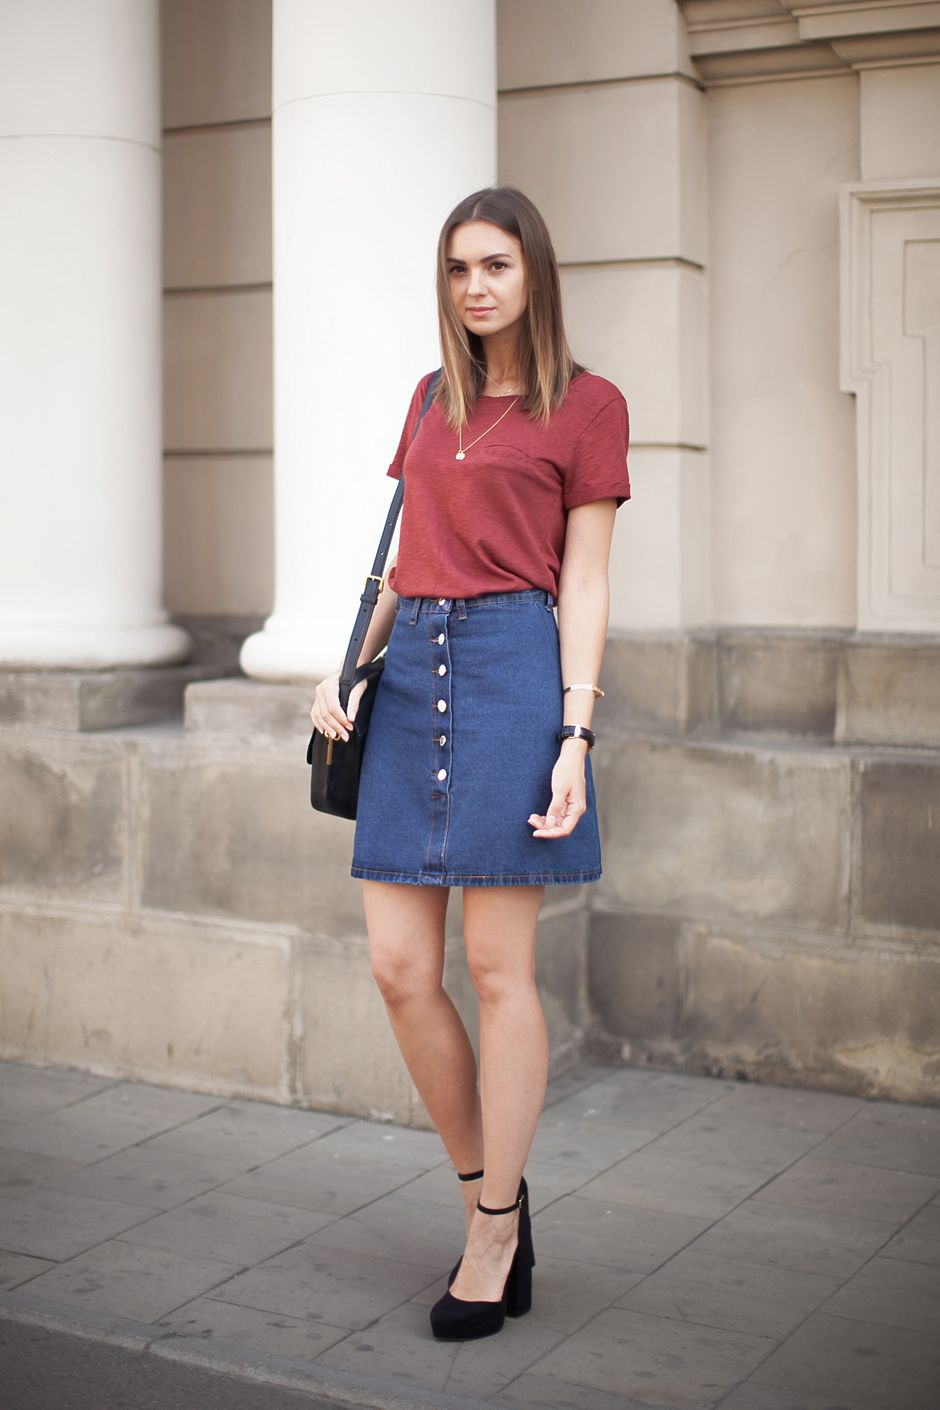 17 Best images about denim skirt outfits on Pinterest | Skirts ...